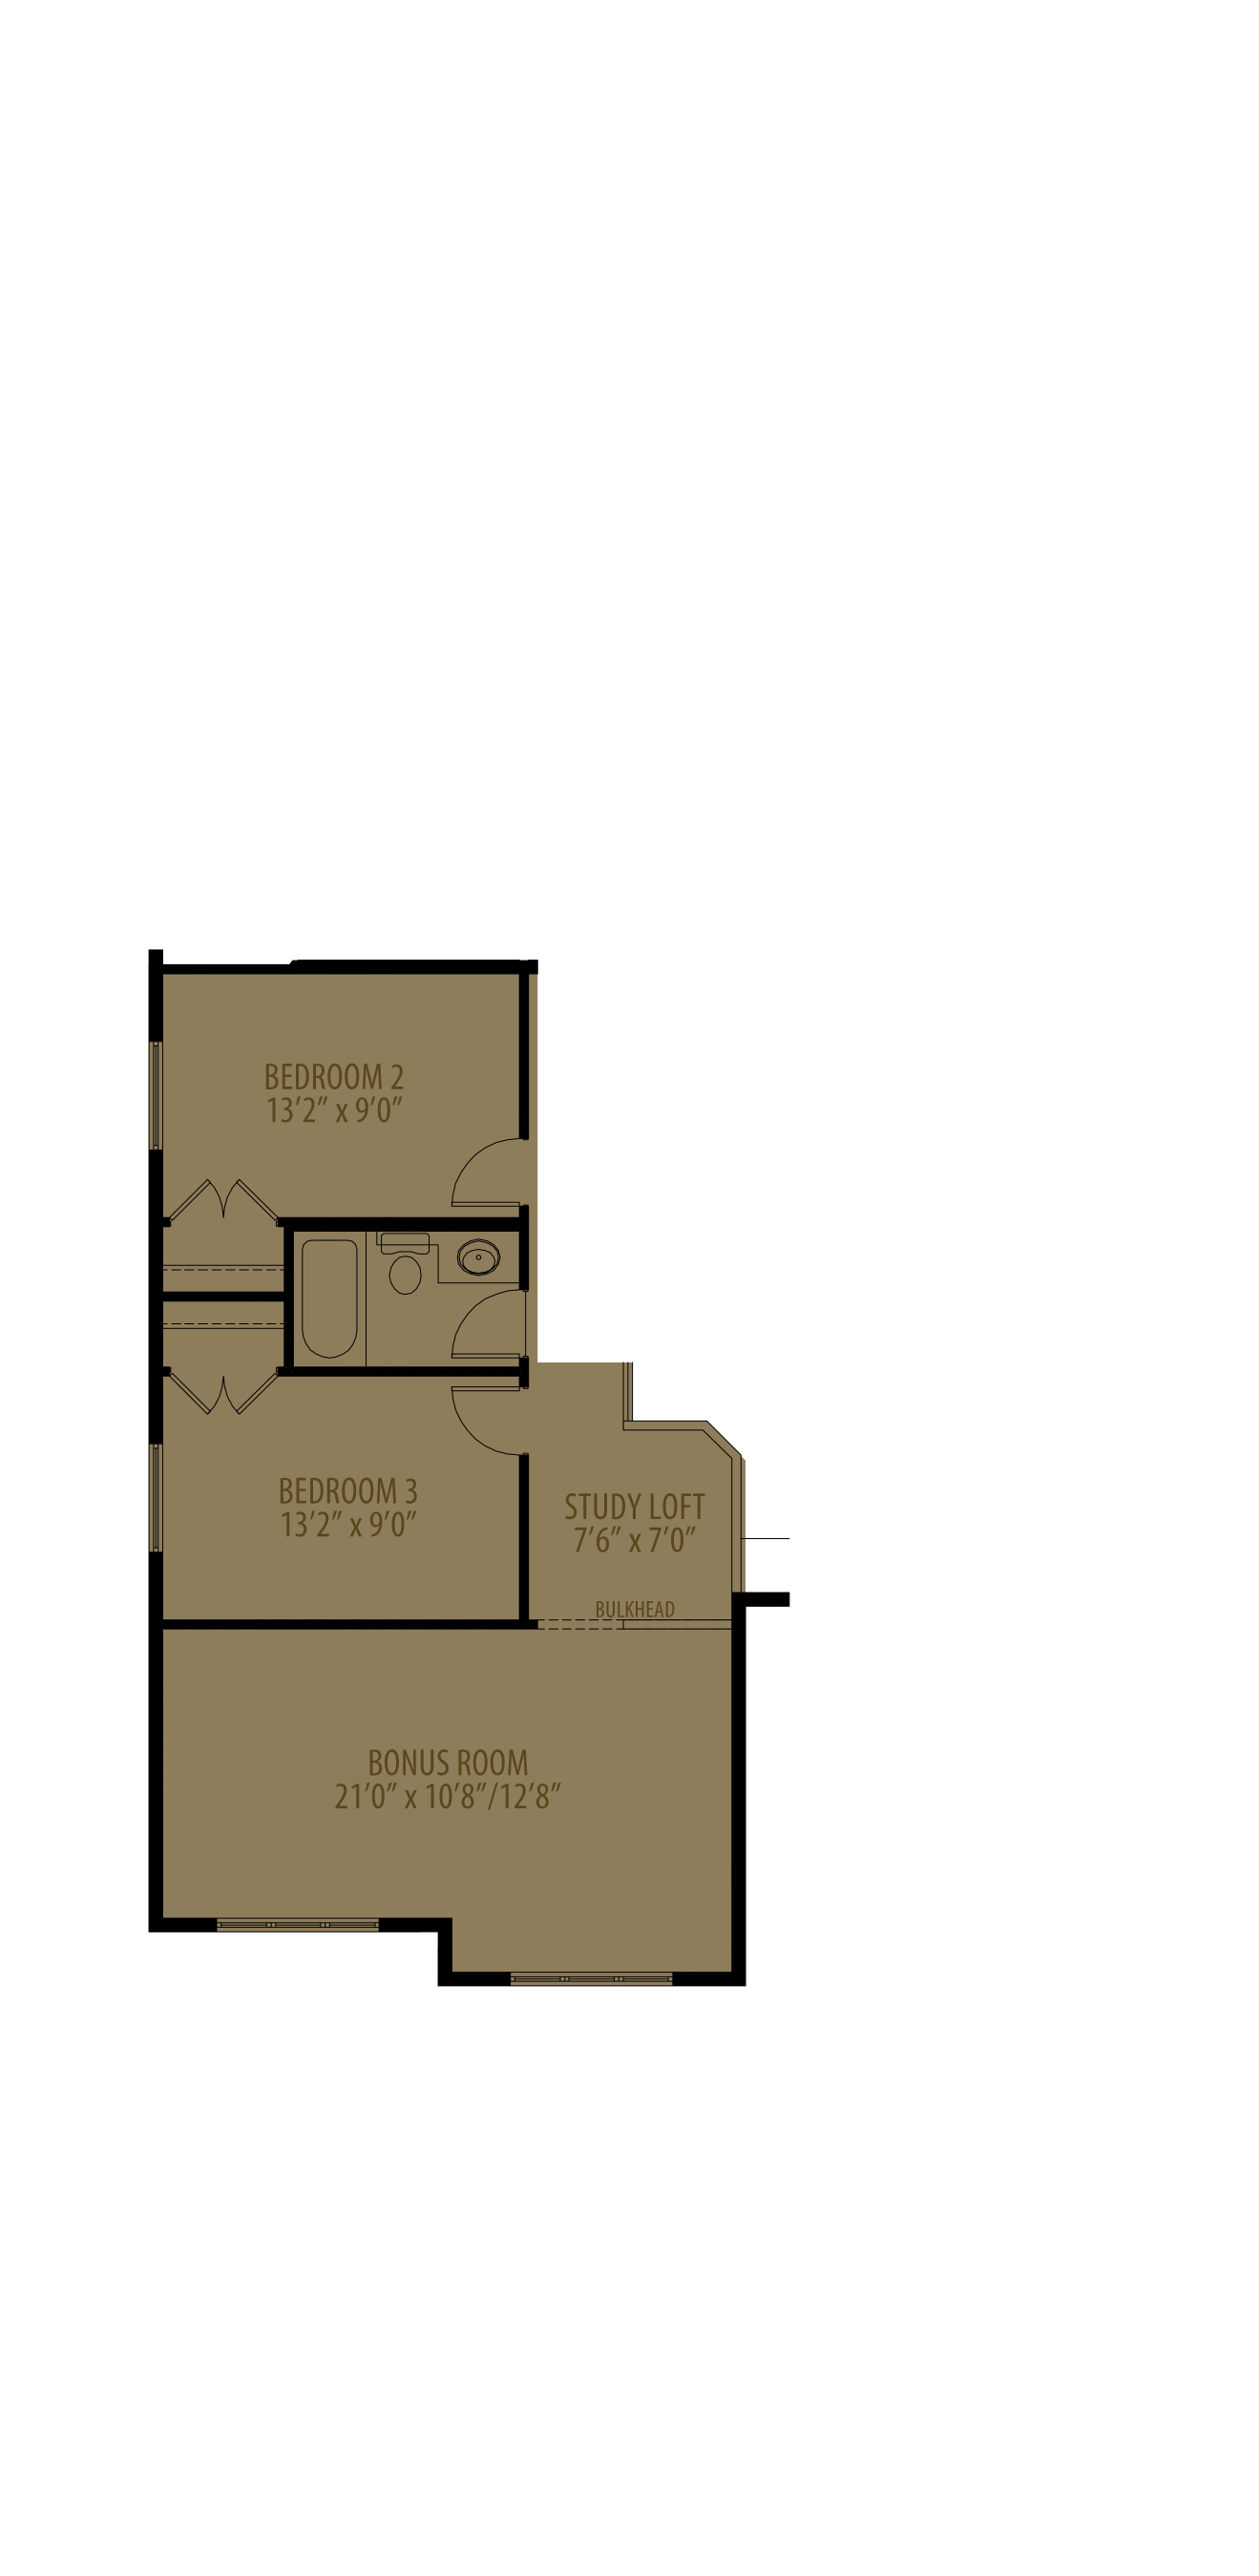 Revised Upper Floor adds 22 sq ft